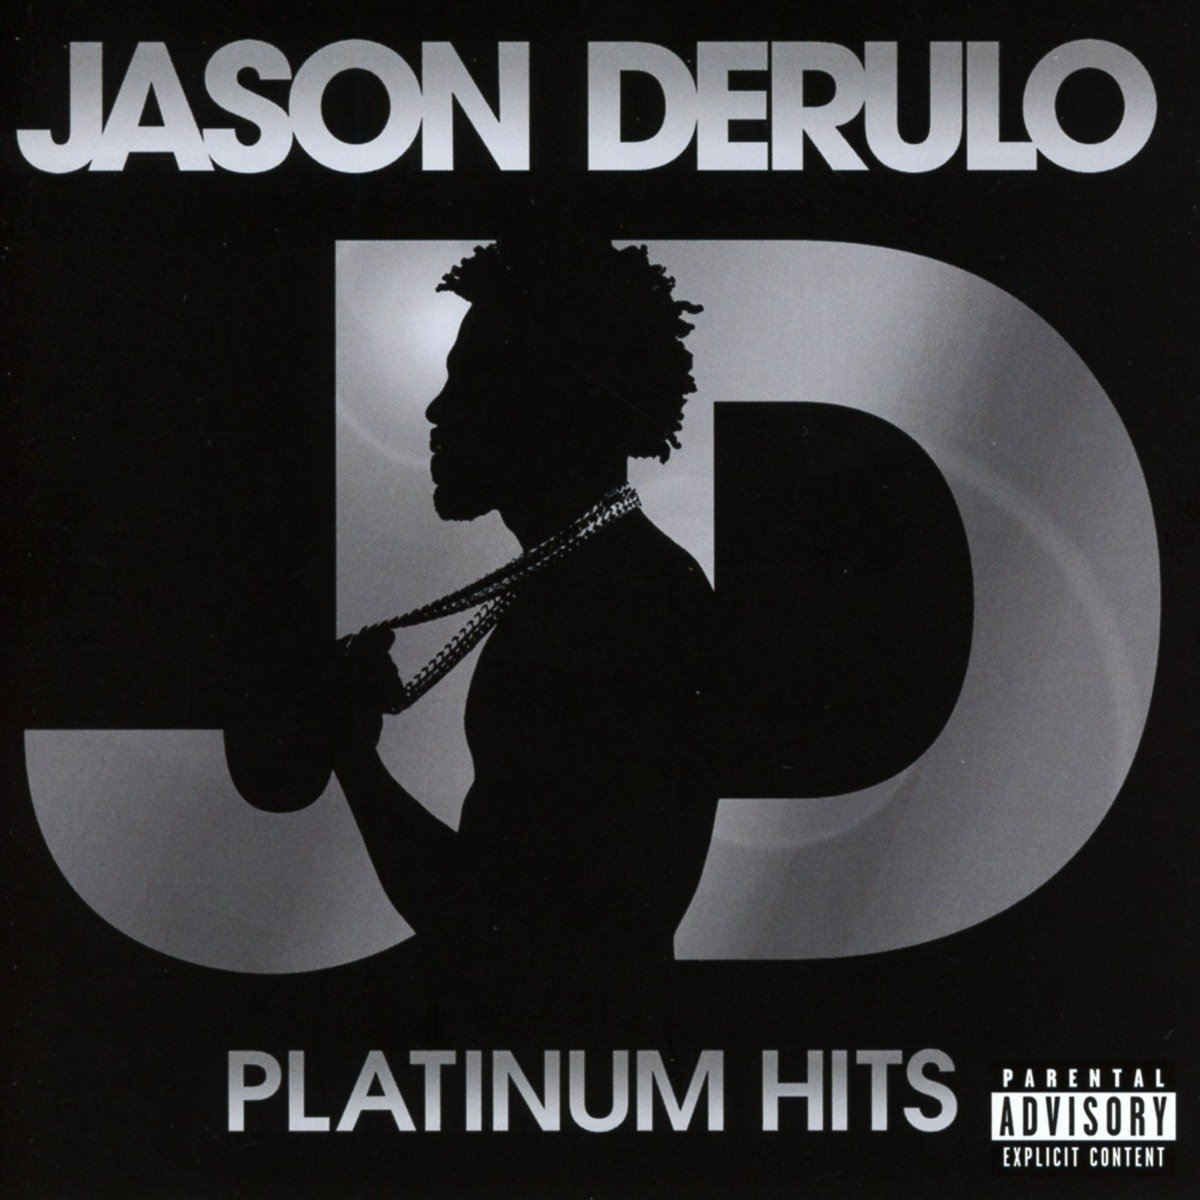 Jason Derulo Makes Case for His Artistic Legacy on 'Platinum Hits'